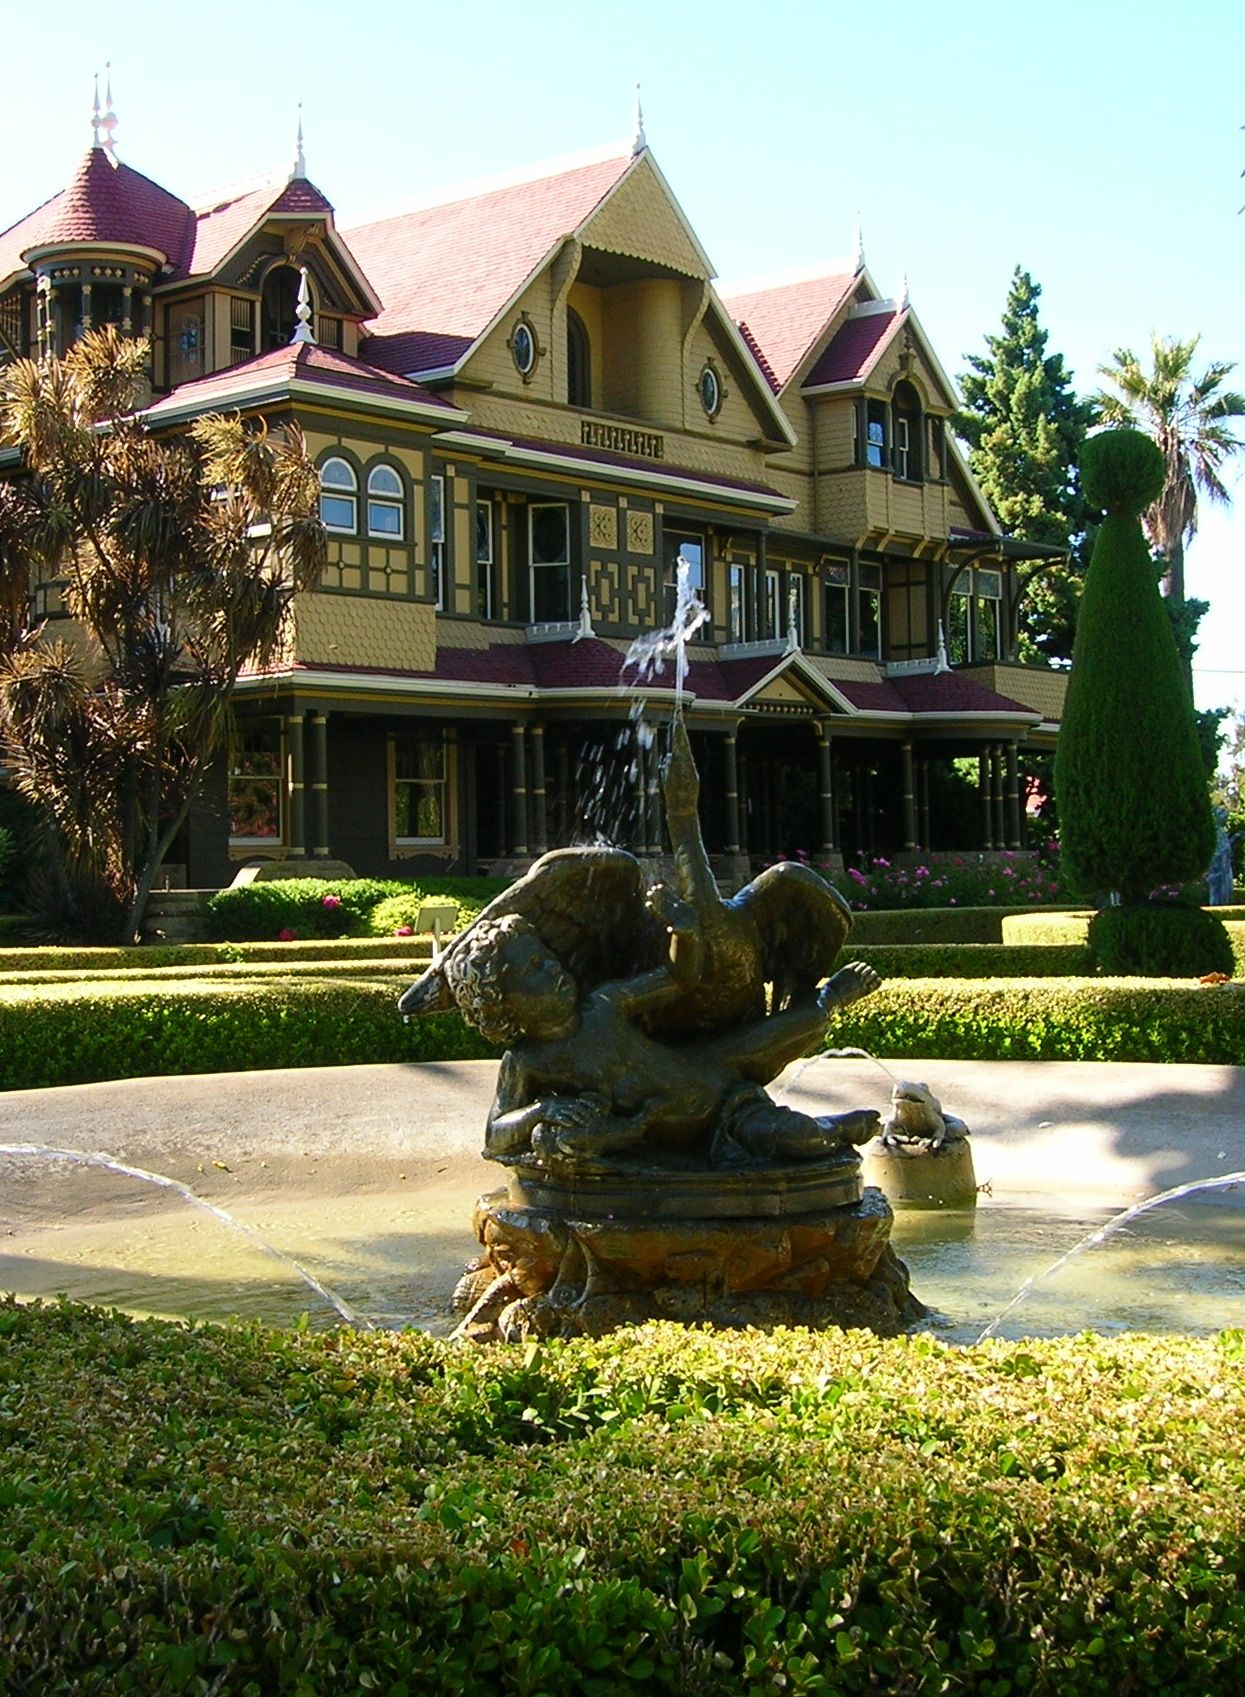 Stay the night at californias winchester mystery house and go on a ghost hunt